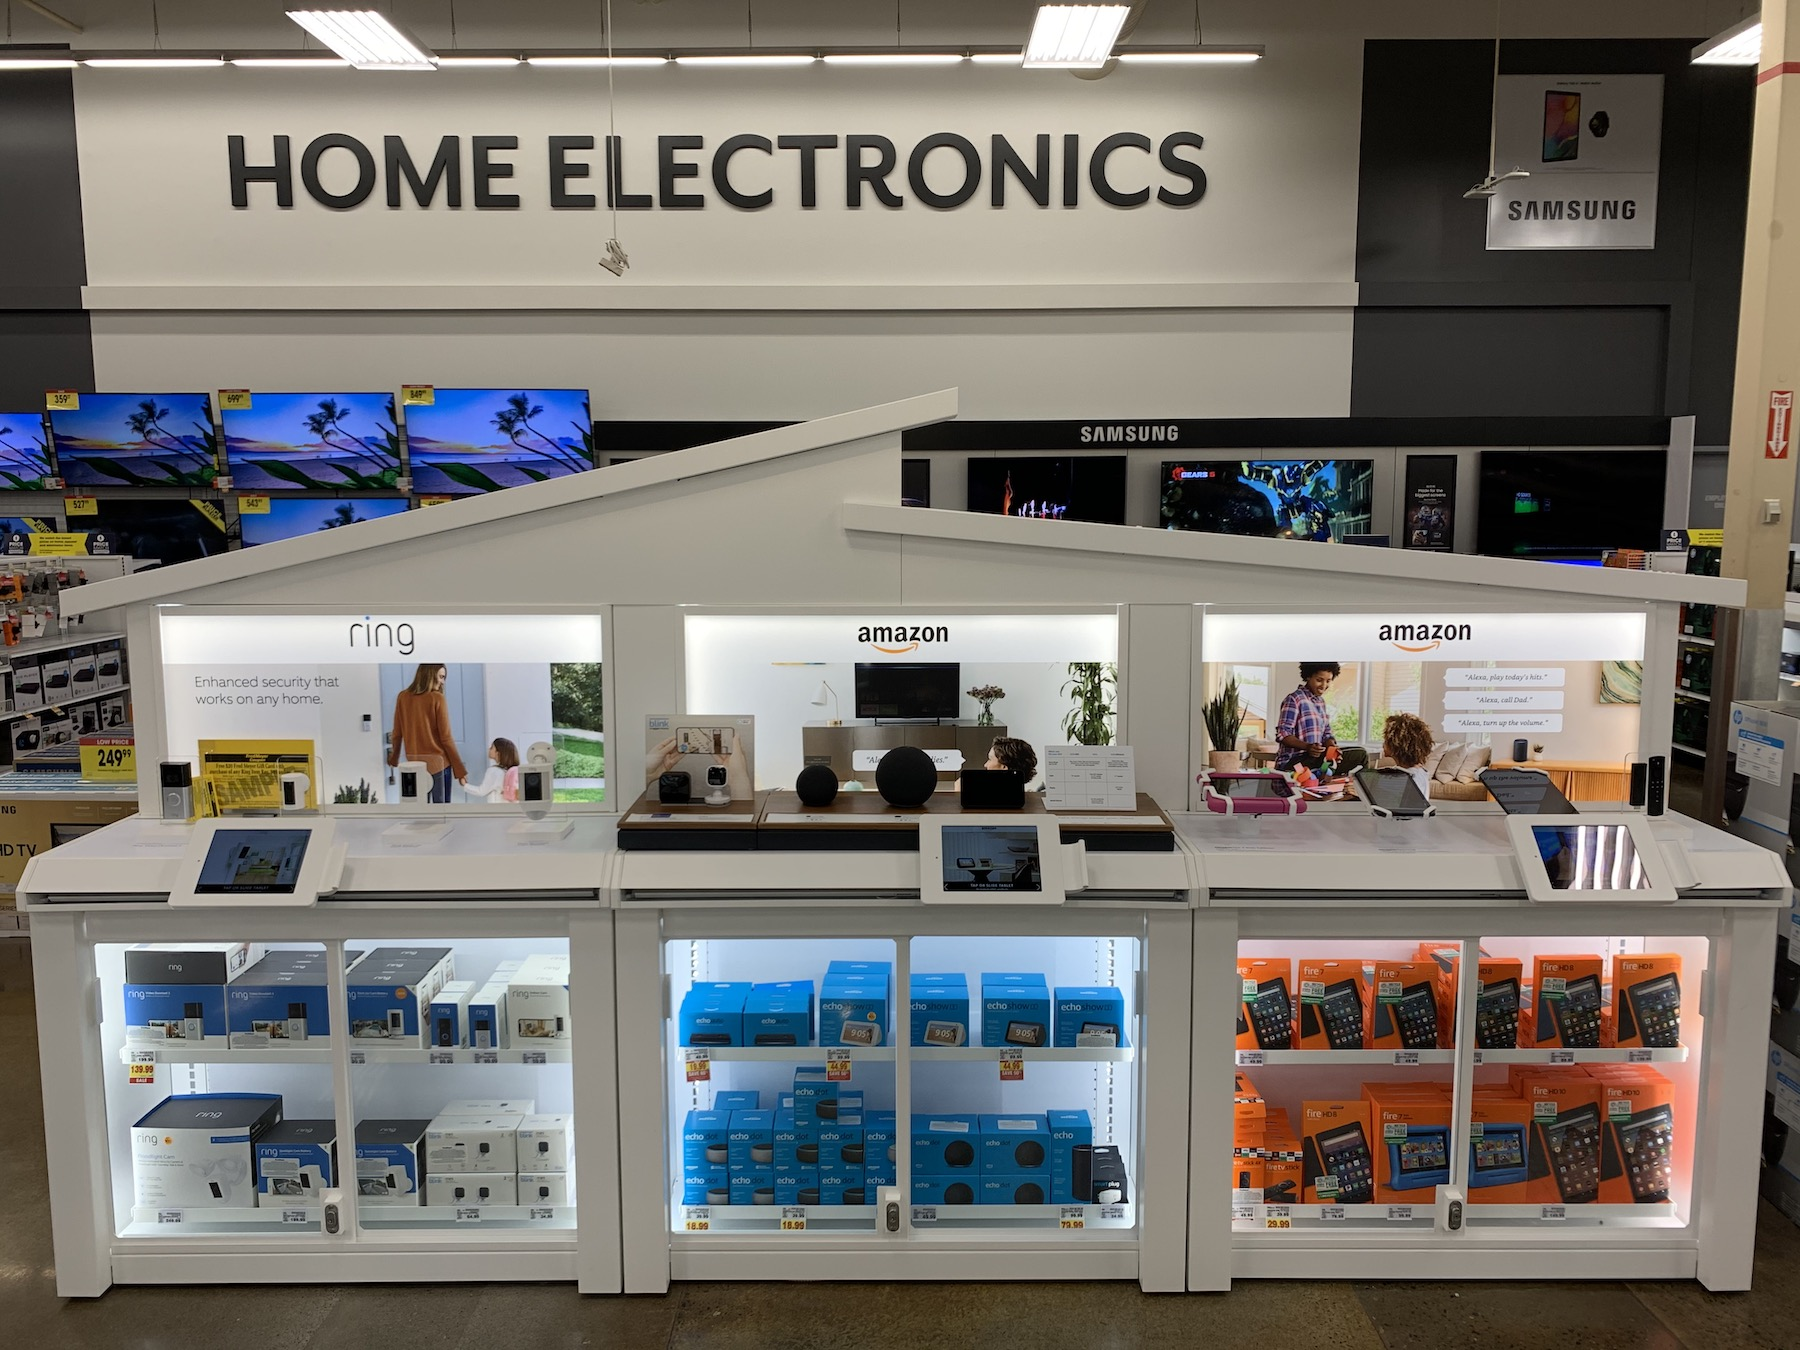 OnQ has updated the home electronics departments in 11 more Fred Meyer stores across the Pacific Northwest, with plans to update another six locations by the end of 2021.